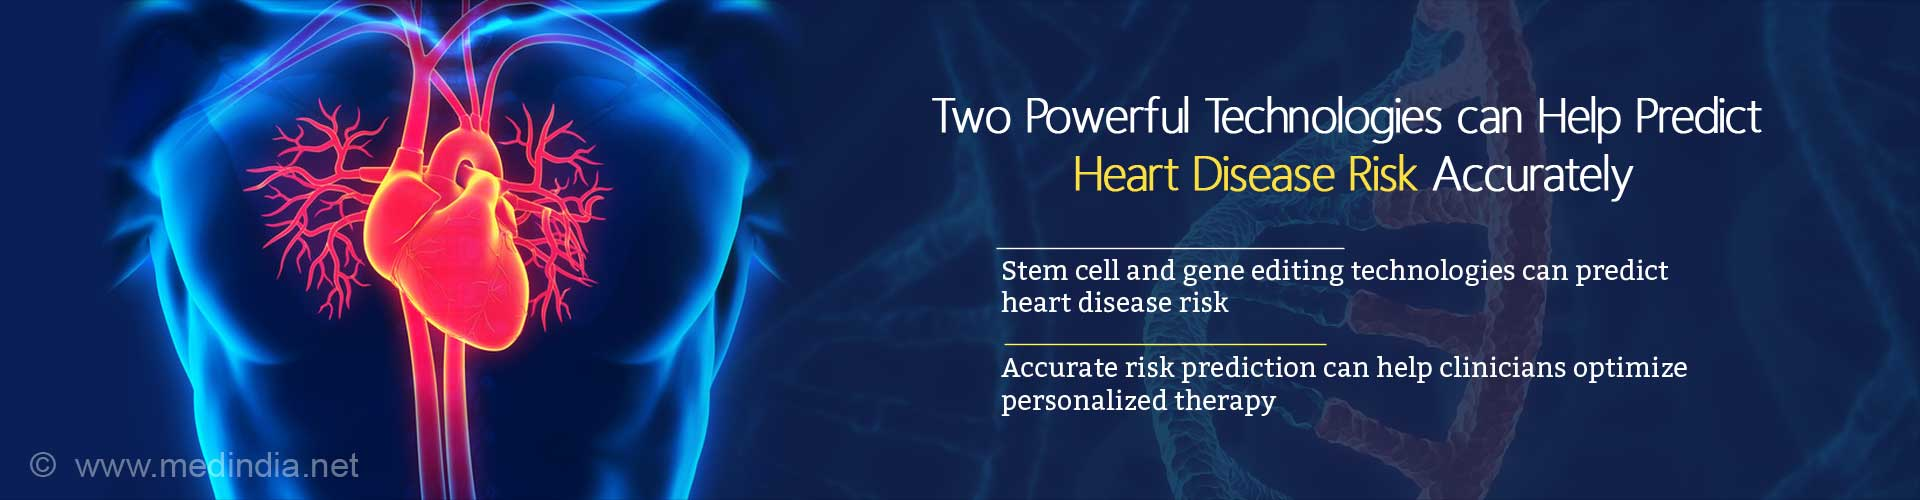 Two powerful technologies can help predict heart disease risk accurately. Stem cell and gene editing technologies can predict heart disease risk. Accurate risk prediction can help clinicians optimize personalized therapy.